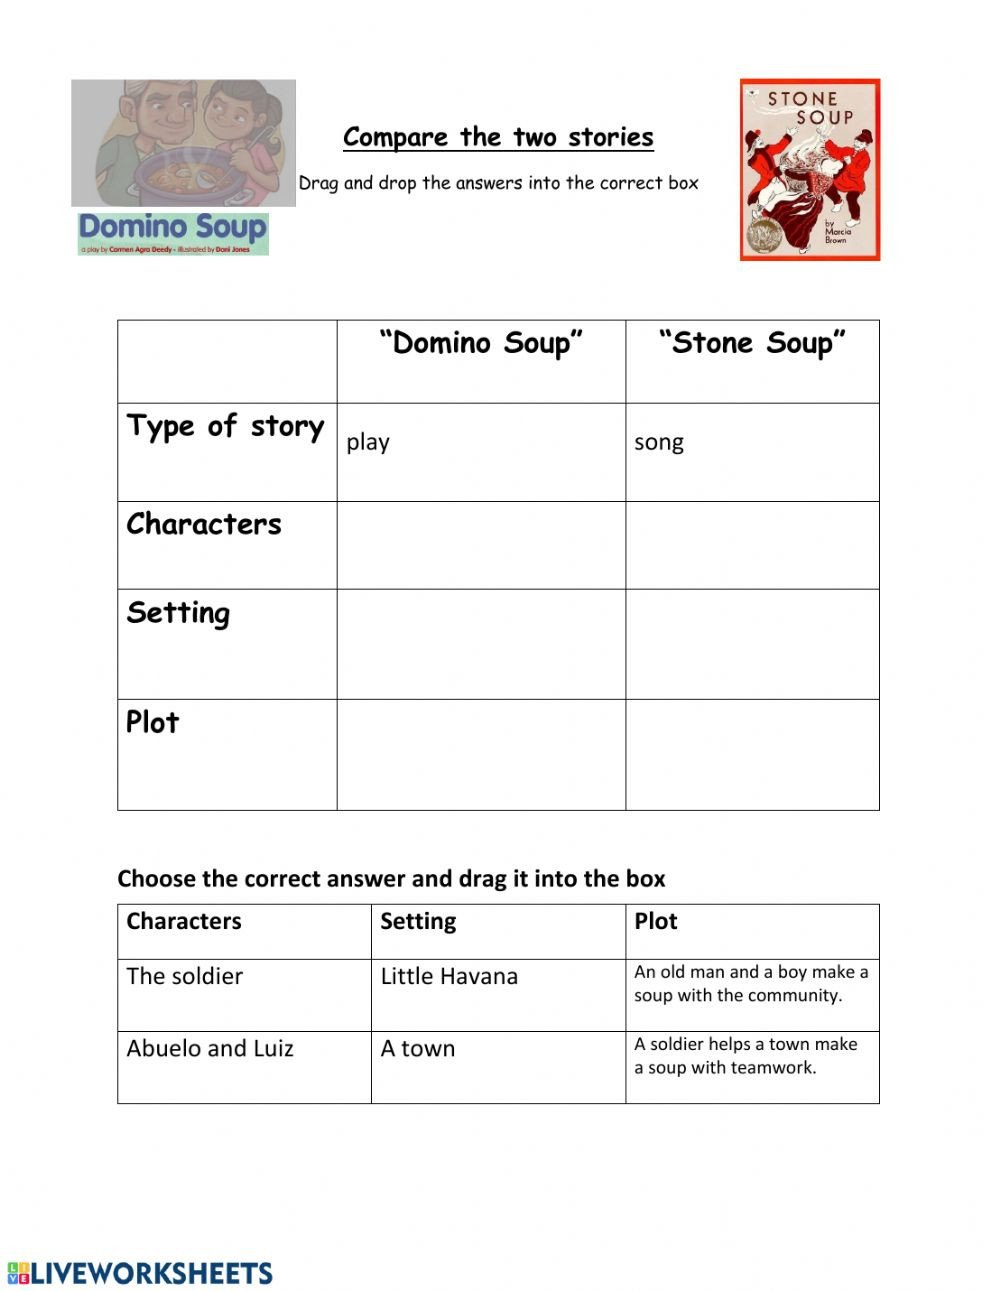 Character Setting and Plot Worksheets Pare Stone soup and Domino soup Interactive Worksheet